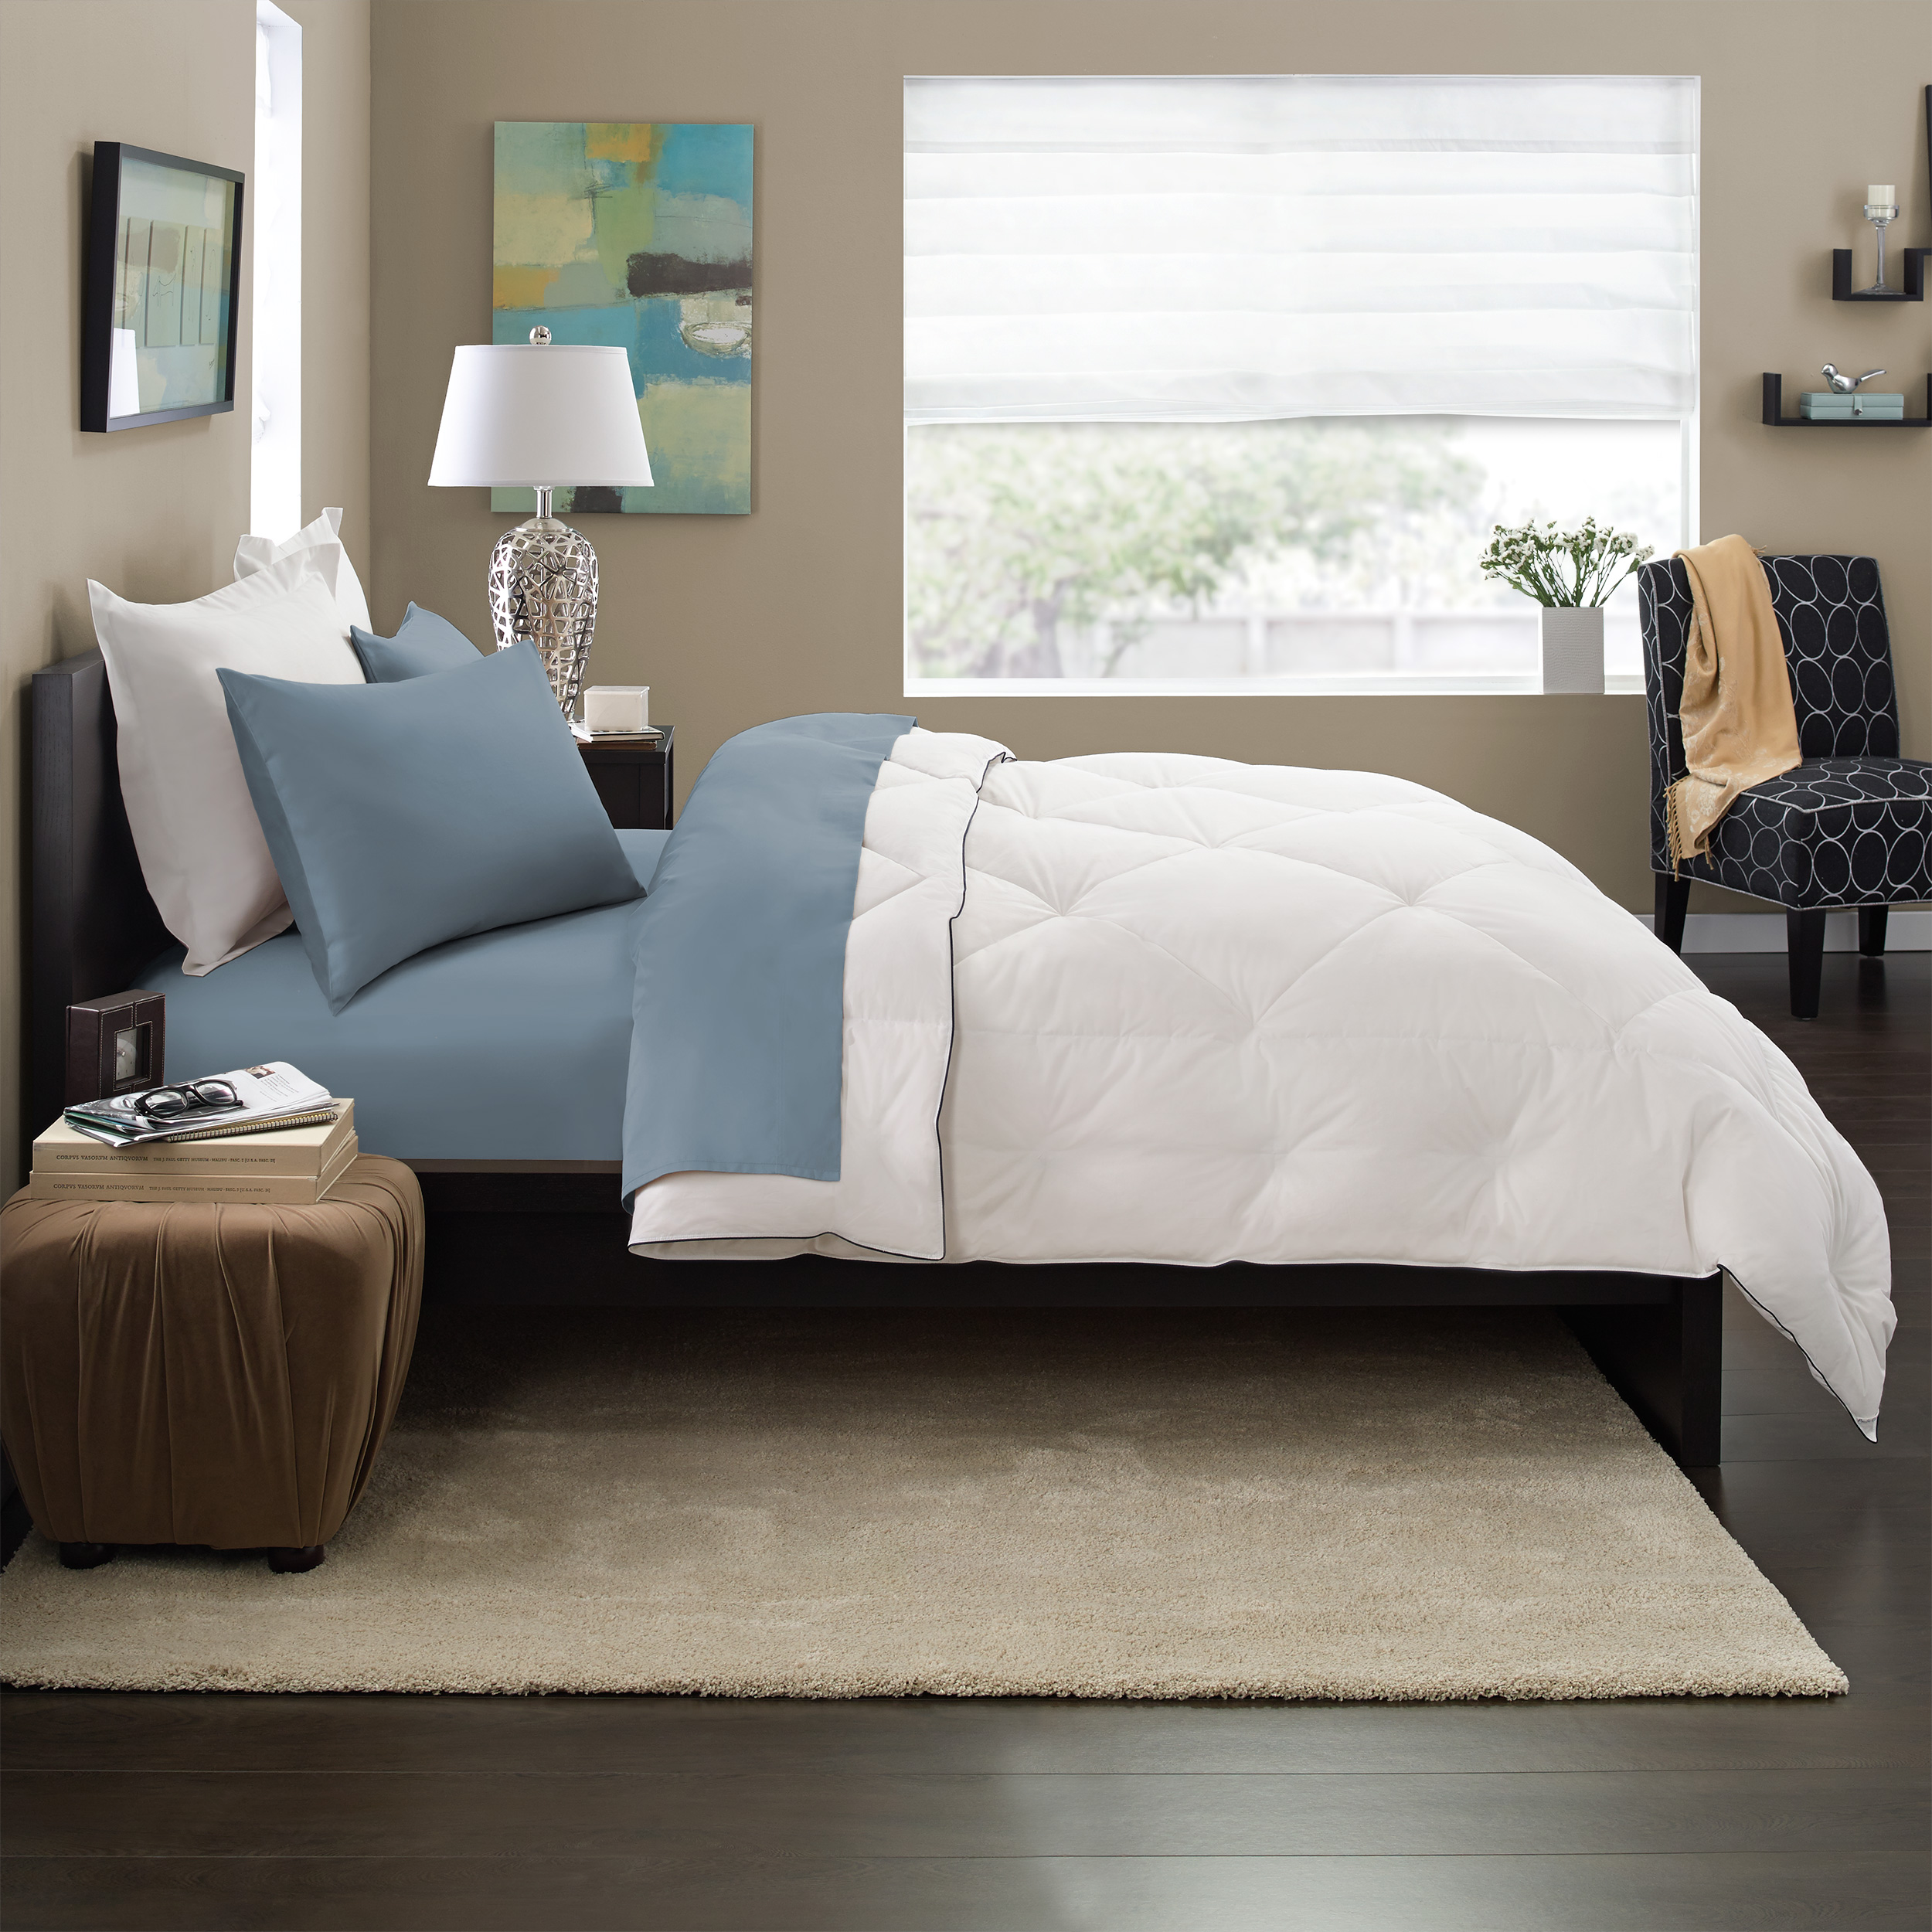 Down Comforter For Any Climate